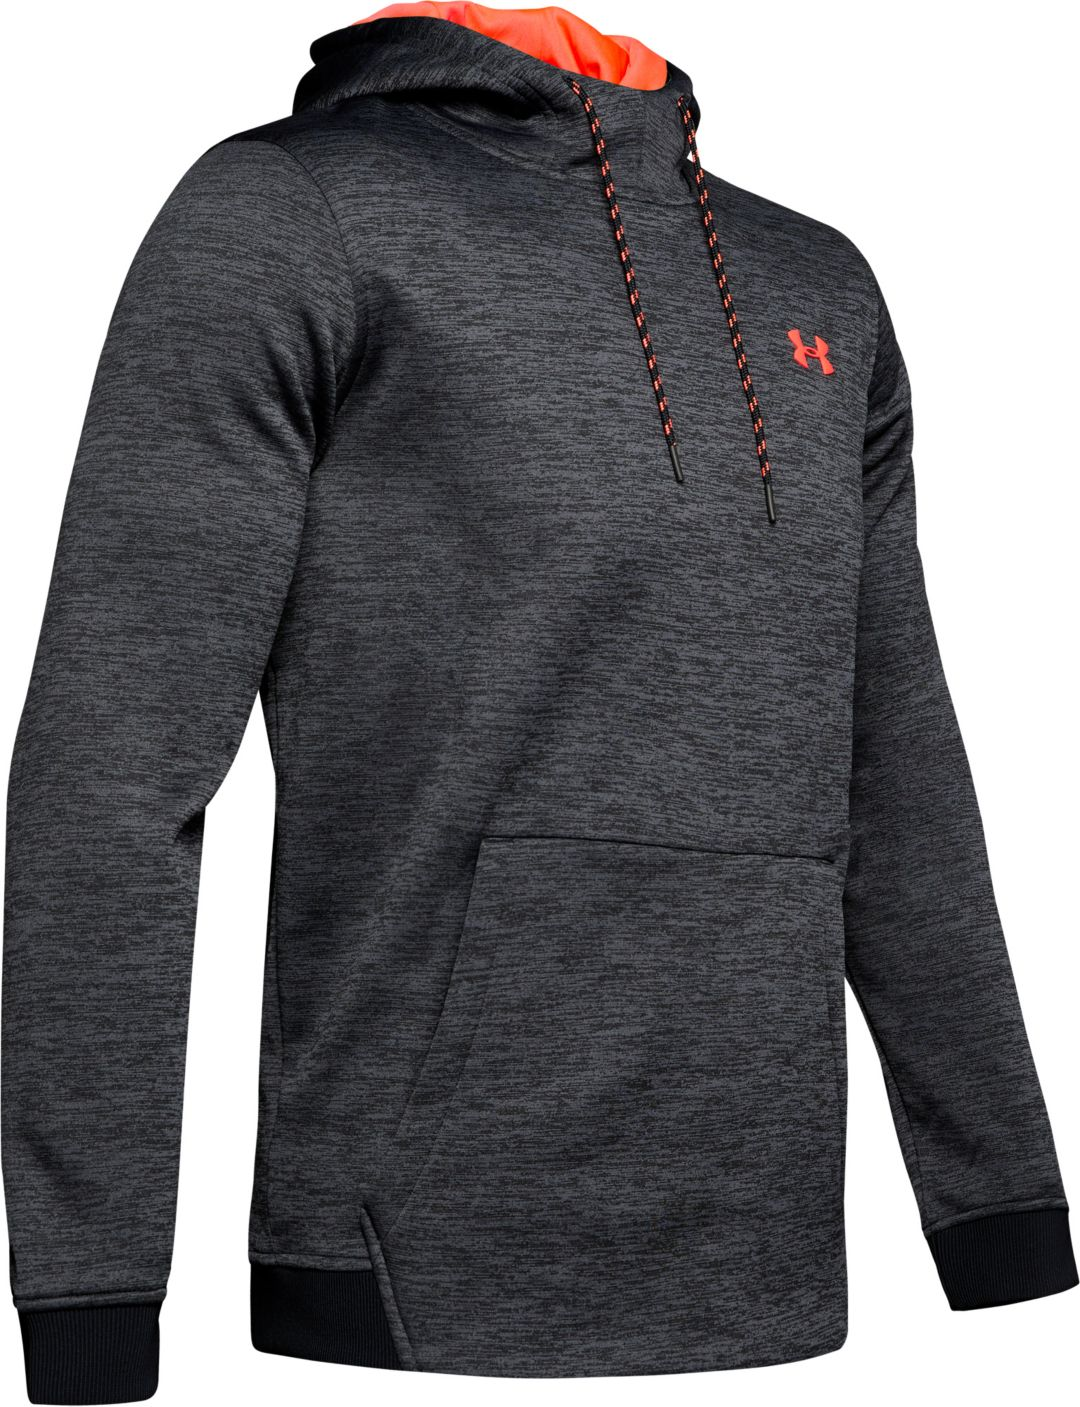 b7c516040 Under Armour Men's Armour Fleece Twist Print Hoodie. noImageFound. Previous